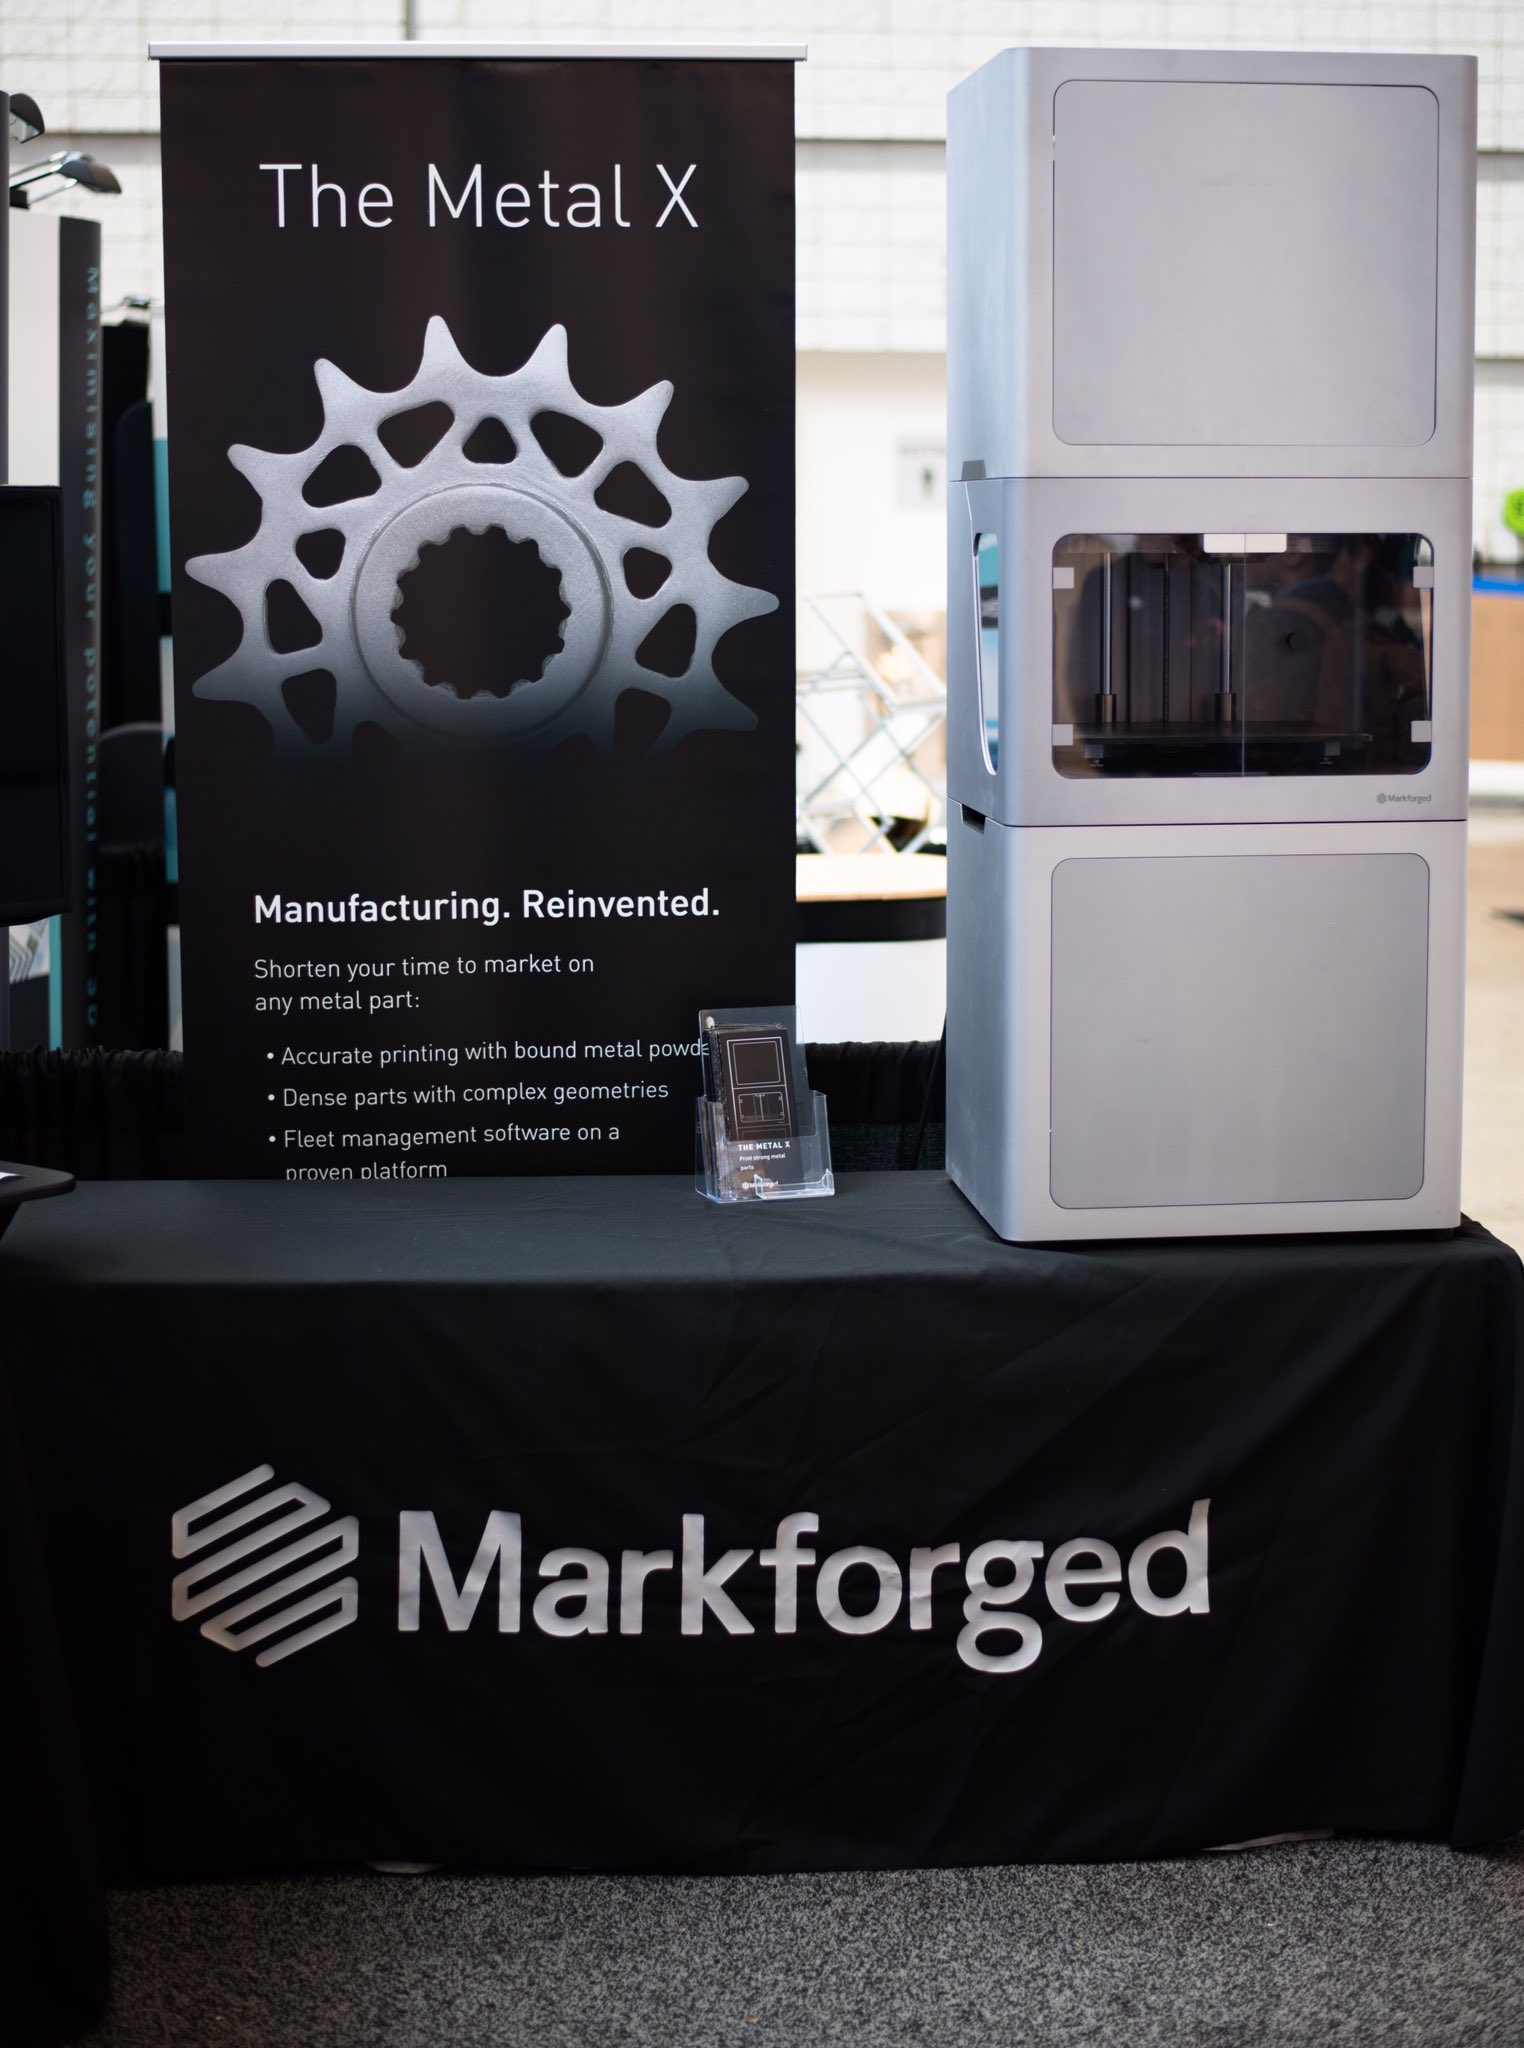 Markforged displays its forthcoming Metal X 3D printer at RAPID + TCT 2017. Photo via Markforged.